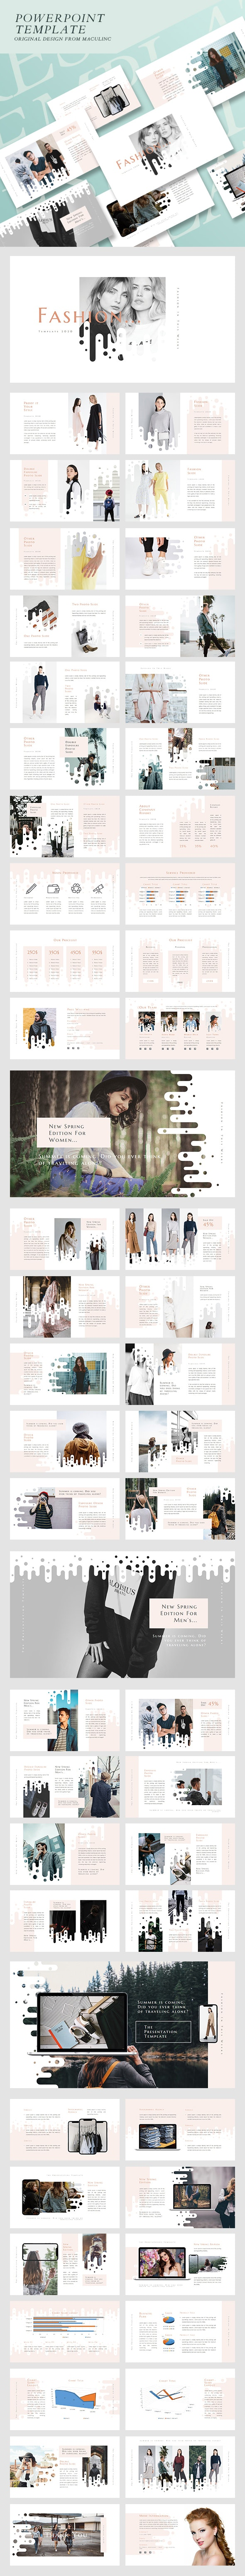 Fashion & Clothing Presentation Template Vol. 02 - Business PowerPoint Templates